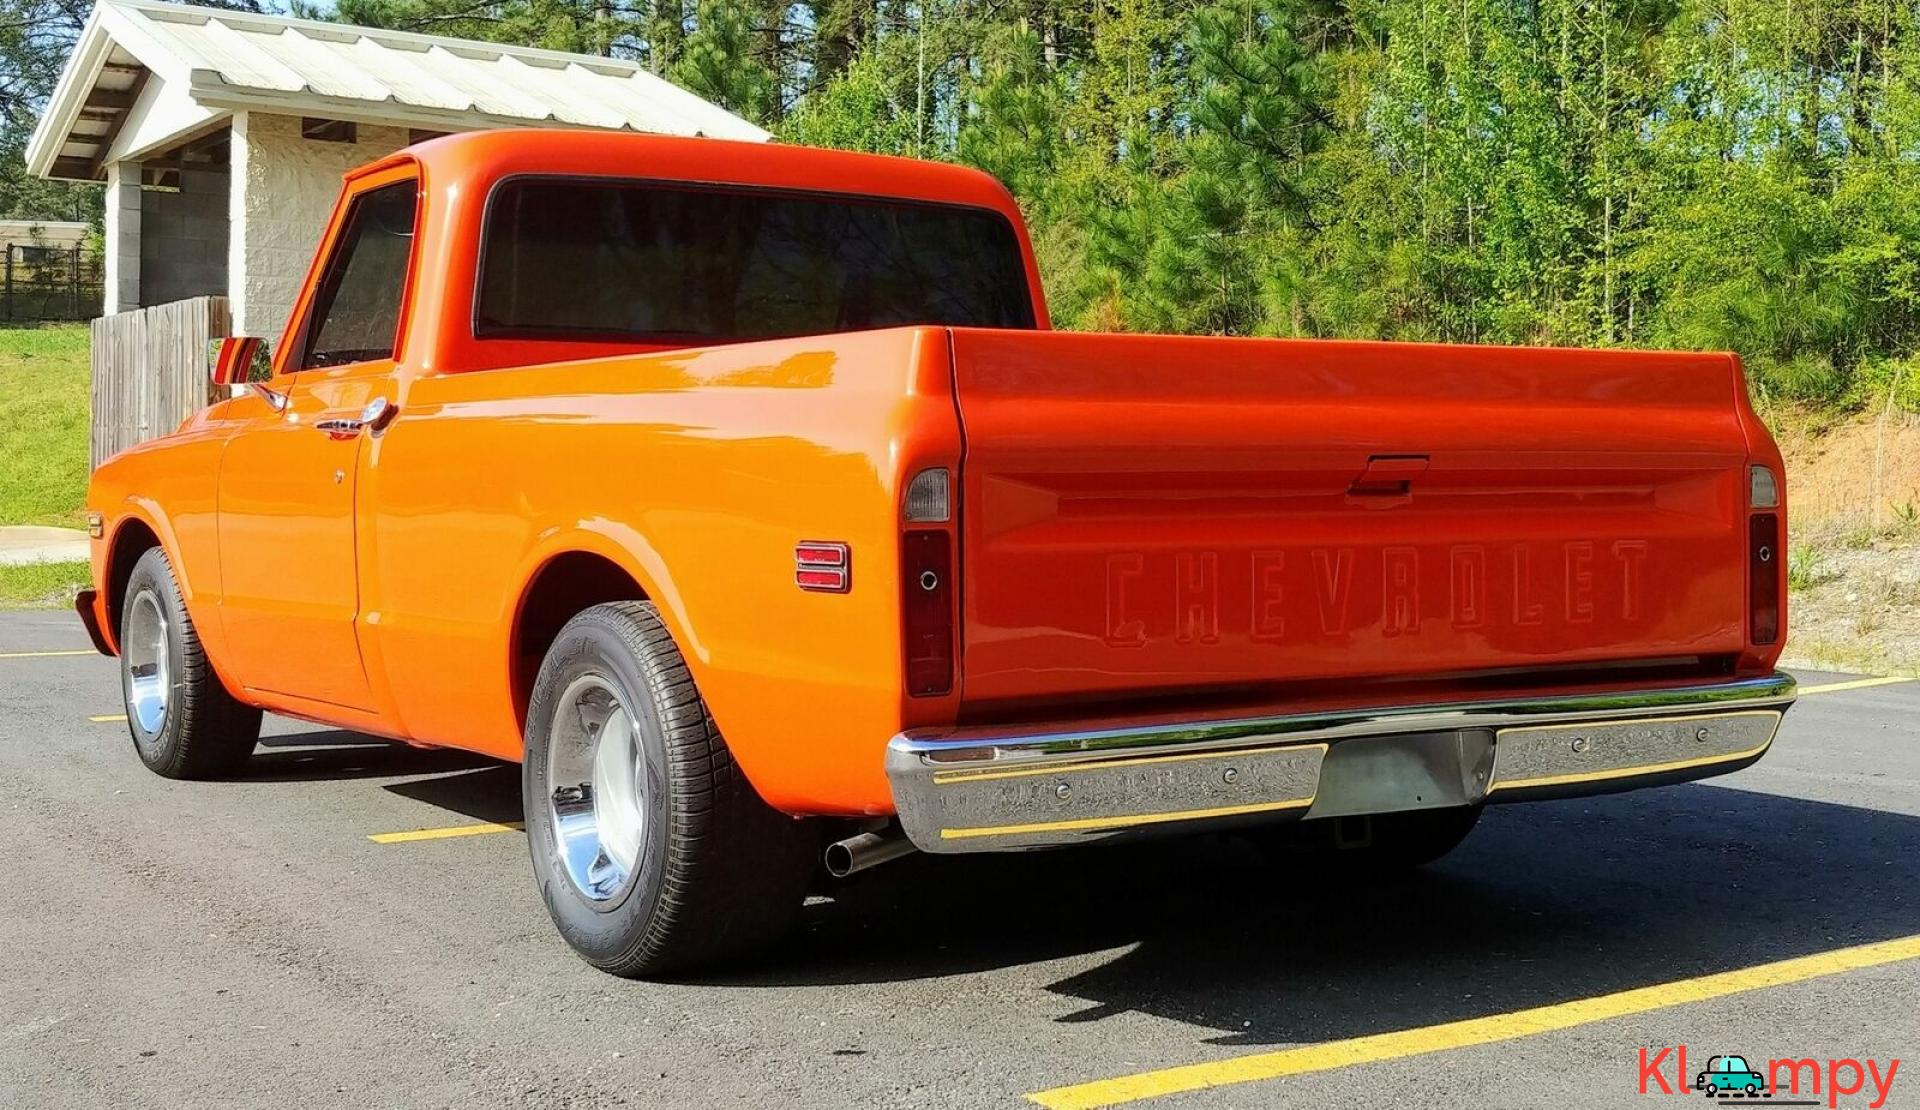 1968 Chevrolet Other Pickups C10 - 9/20